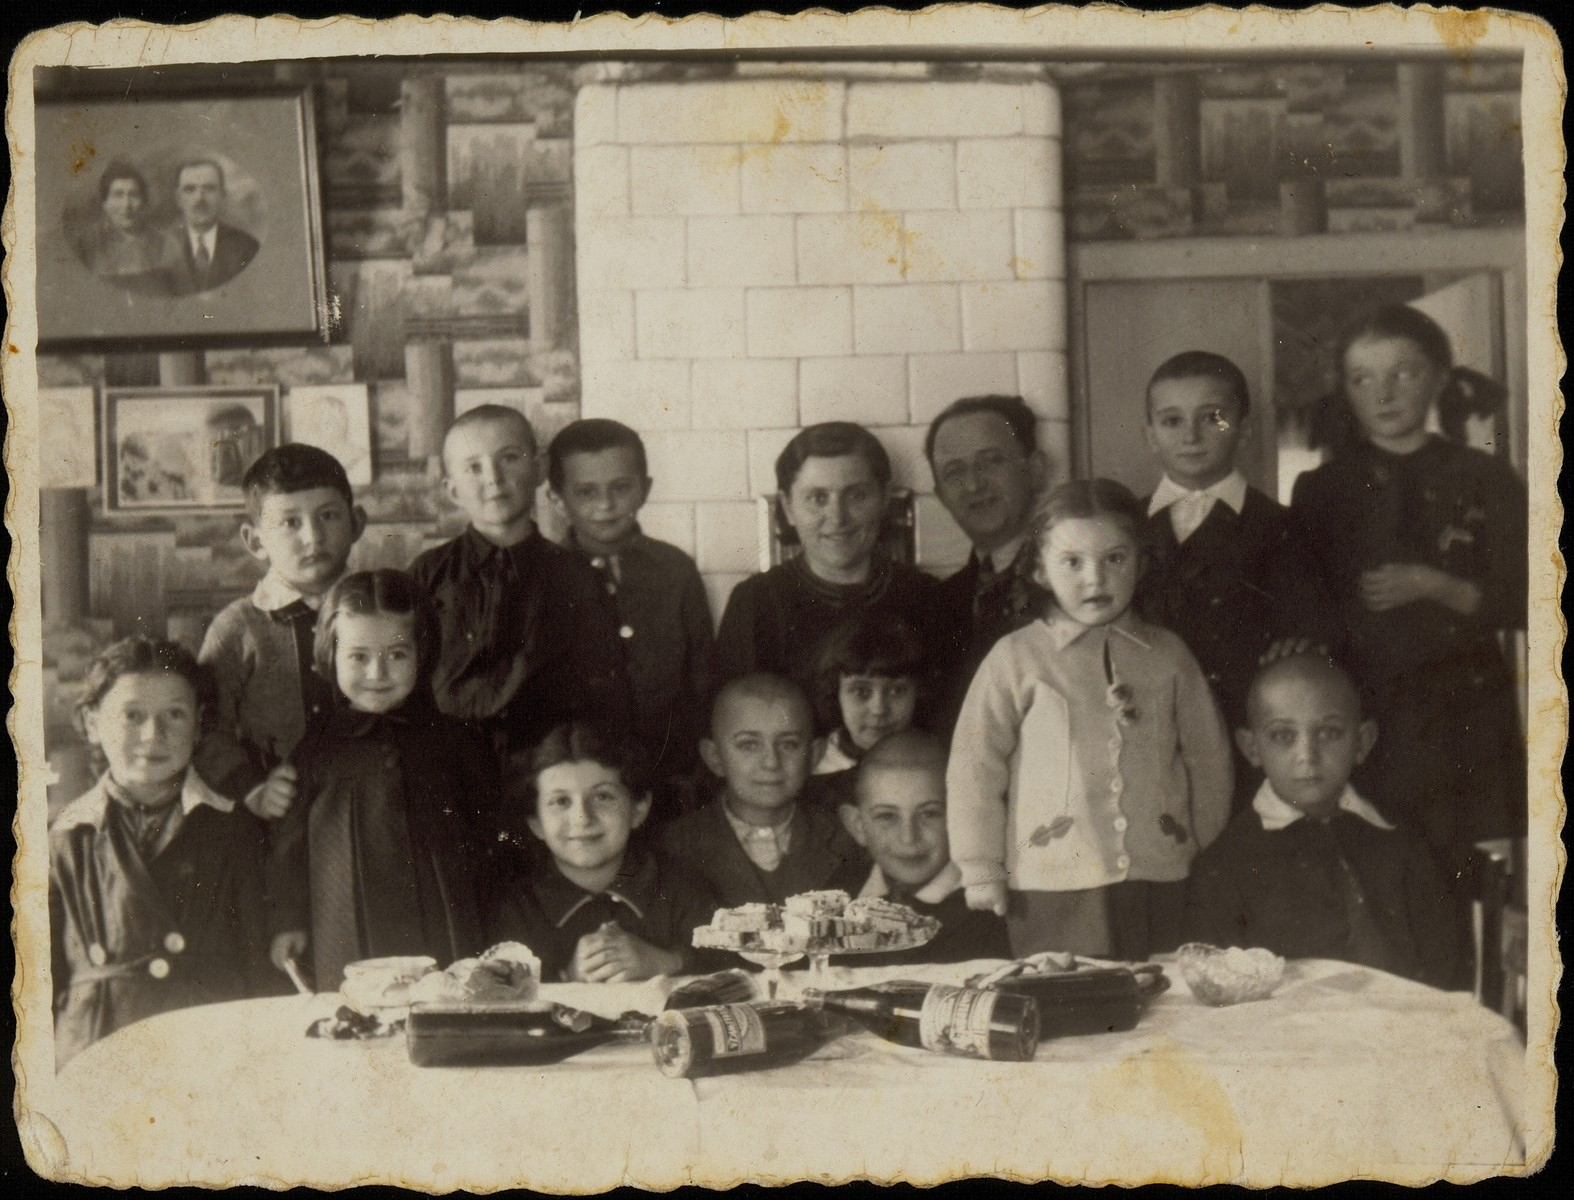 A joint birthday party for cousins Shula and Yaffa Sonenson in Eisiskes.    Pictured in the back row from right to left are: Hannkeh Tawlitski, Elisha Koppelman, Shalom and Miriam Sonenson (the hosts of the party), Shmuel Sonenson; Hayyim Tawlitski and Meir Sonenson.  In the front row from right to left are: Shaul Replianski, Yaffa and Yitzhak Sonenson, Sheinke Dwilanski, Benyamin, Gittele, Shula Sonenson and Leahke Tawlitski.  Hanging on the wall is a photograph of Miriam Sonenson's parents and a painting of Jerusalem flanked by marble reliefs of Theodor Herzl and Nahman Hayim Bialik.  Of those pictured only Shalom, Yitzhak and Yaffa Sonenson survived. Elisha Koppelman was killed by members of the Polish Home Army; Gittele died from tuberculosis in the Korkuc pit;  Miriam and Shula were killed by Germans during an action in the Radun ghetto.  The others were killed by the Germans during the September 1941 mass shooting action in Eisiskes.